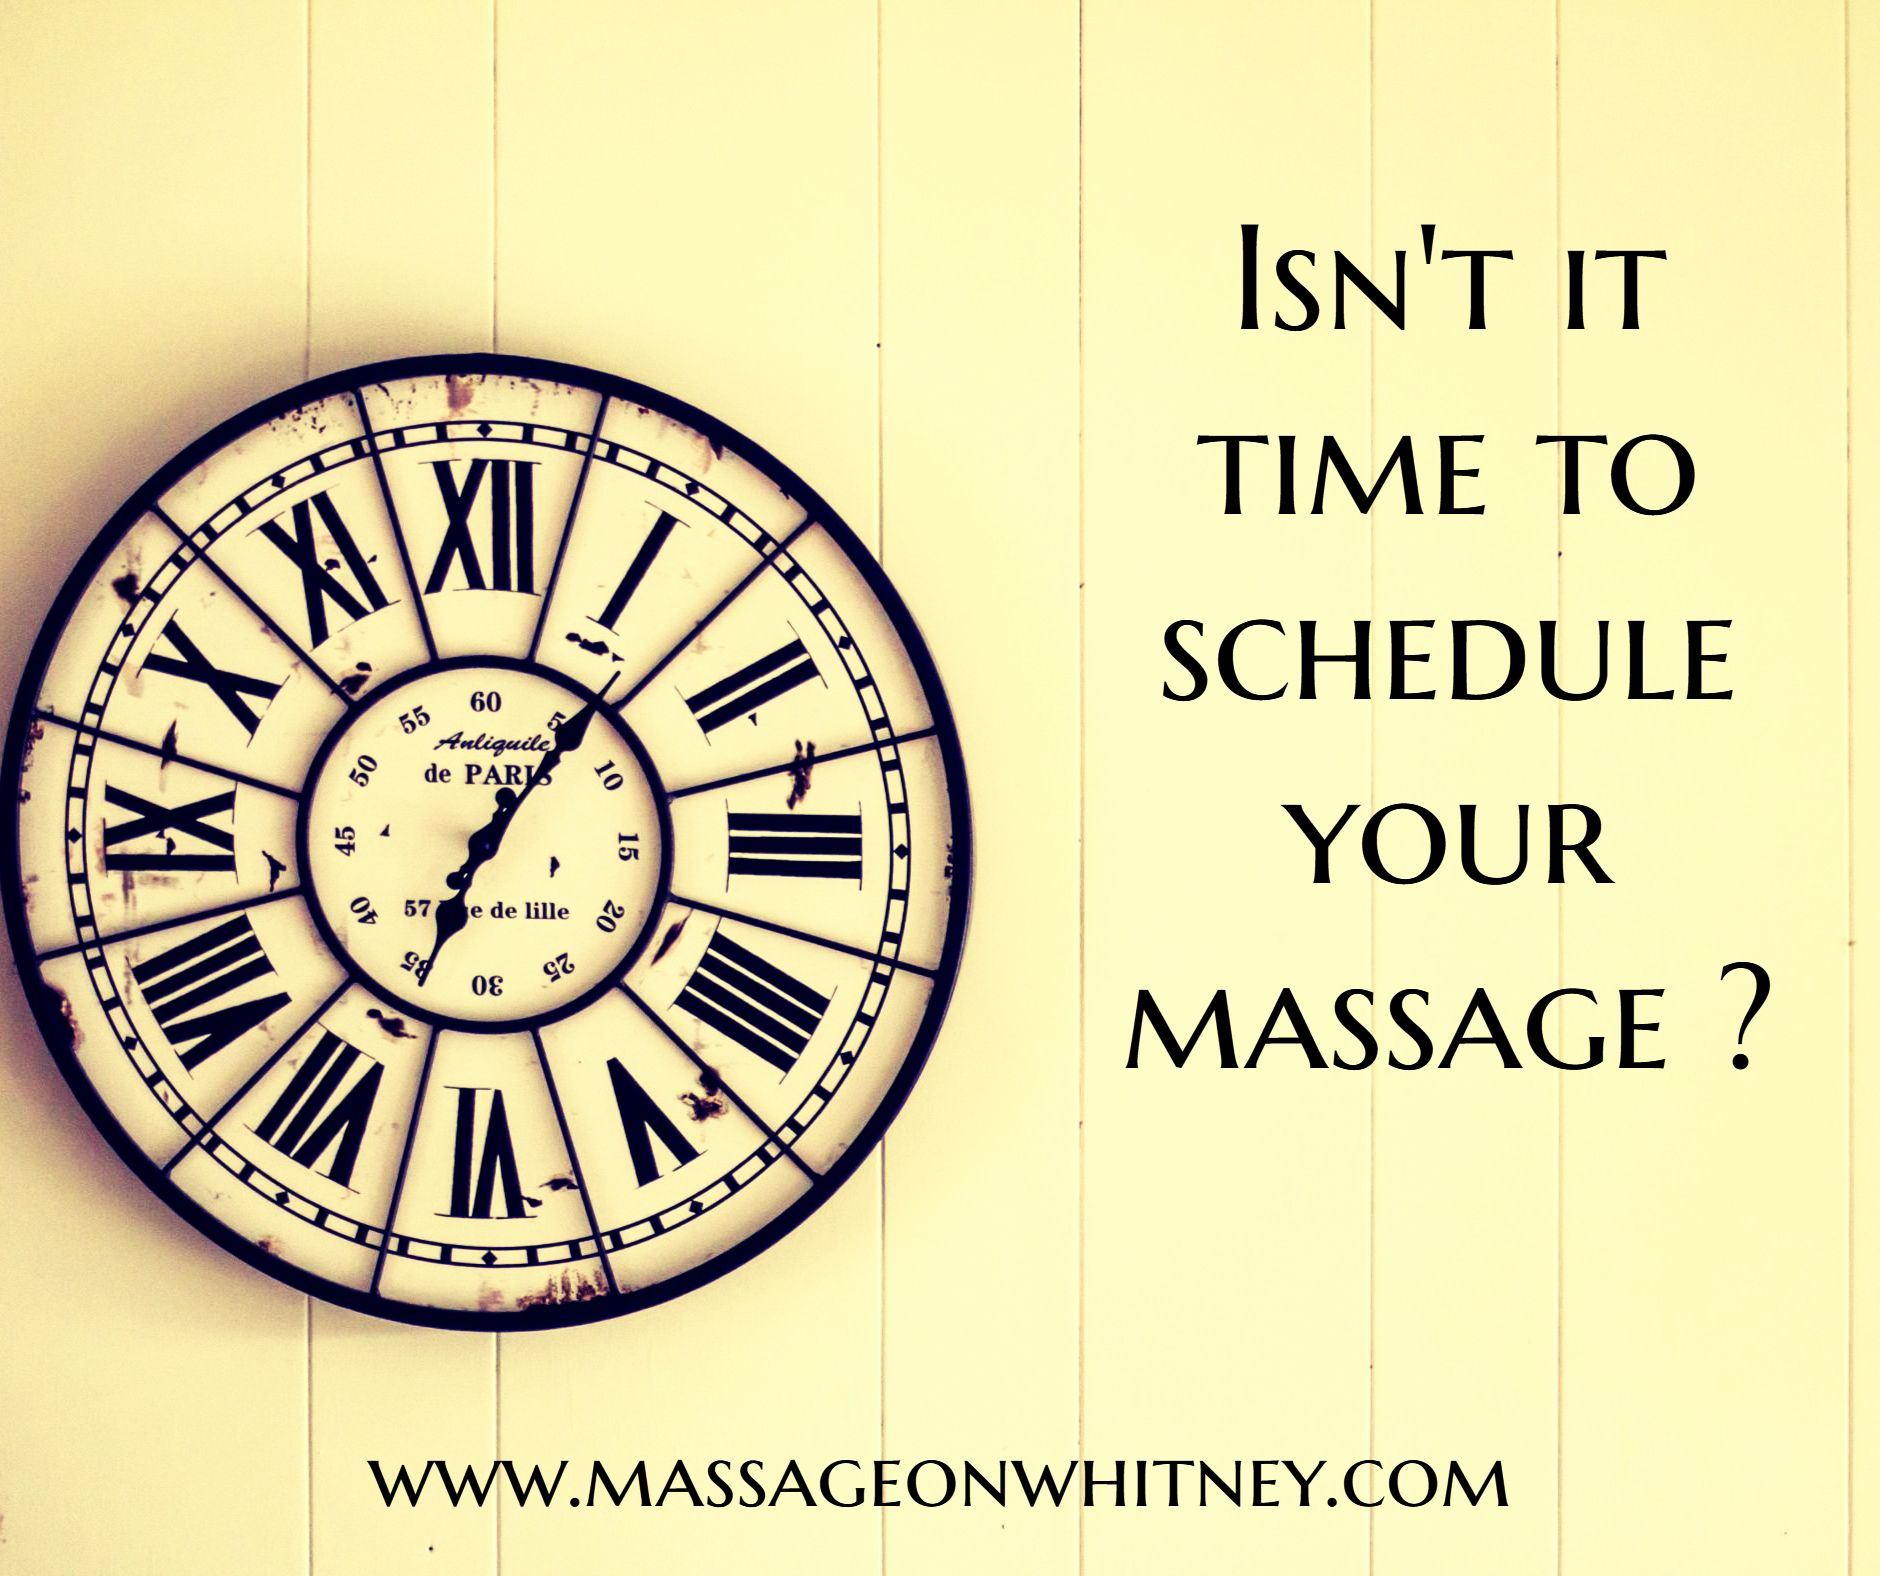 Isnt it time to schedule your massage www